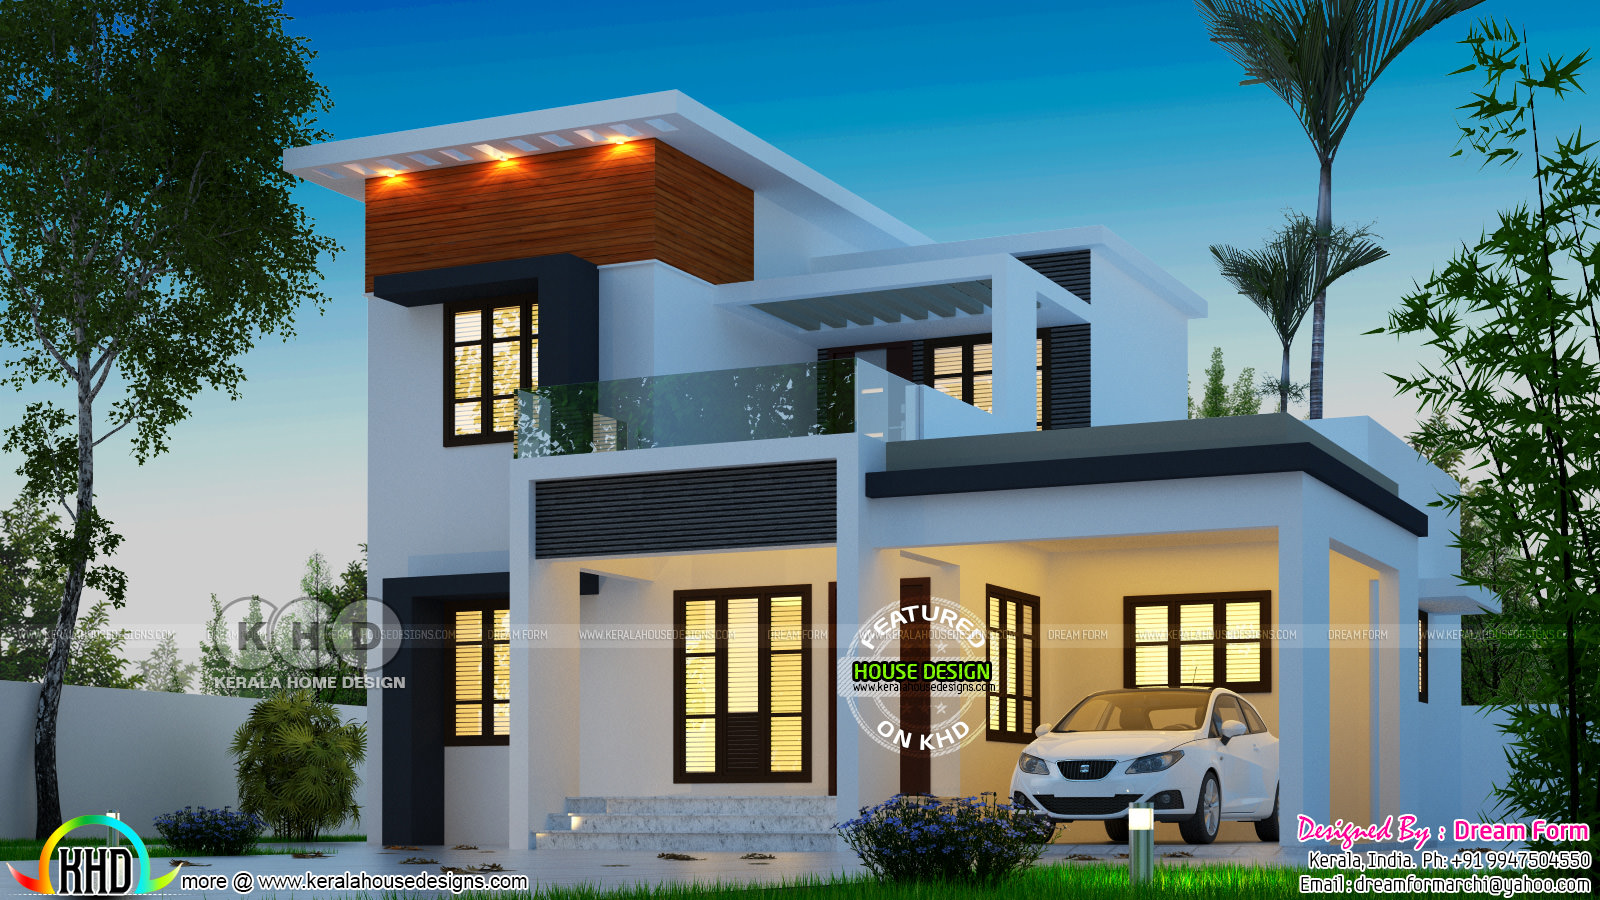 4 Bedroom Modern Beautiful Home Architecture 1628 Sq Ft Kerala Home Design Bloglovin